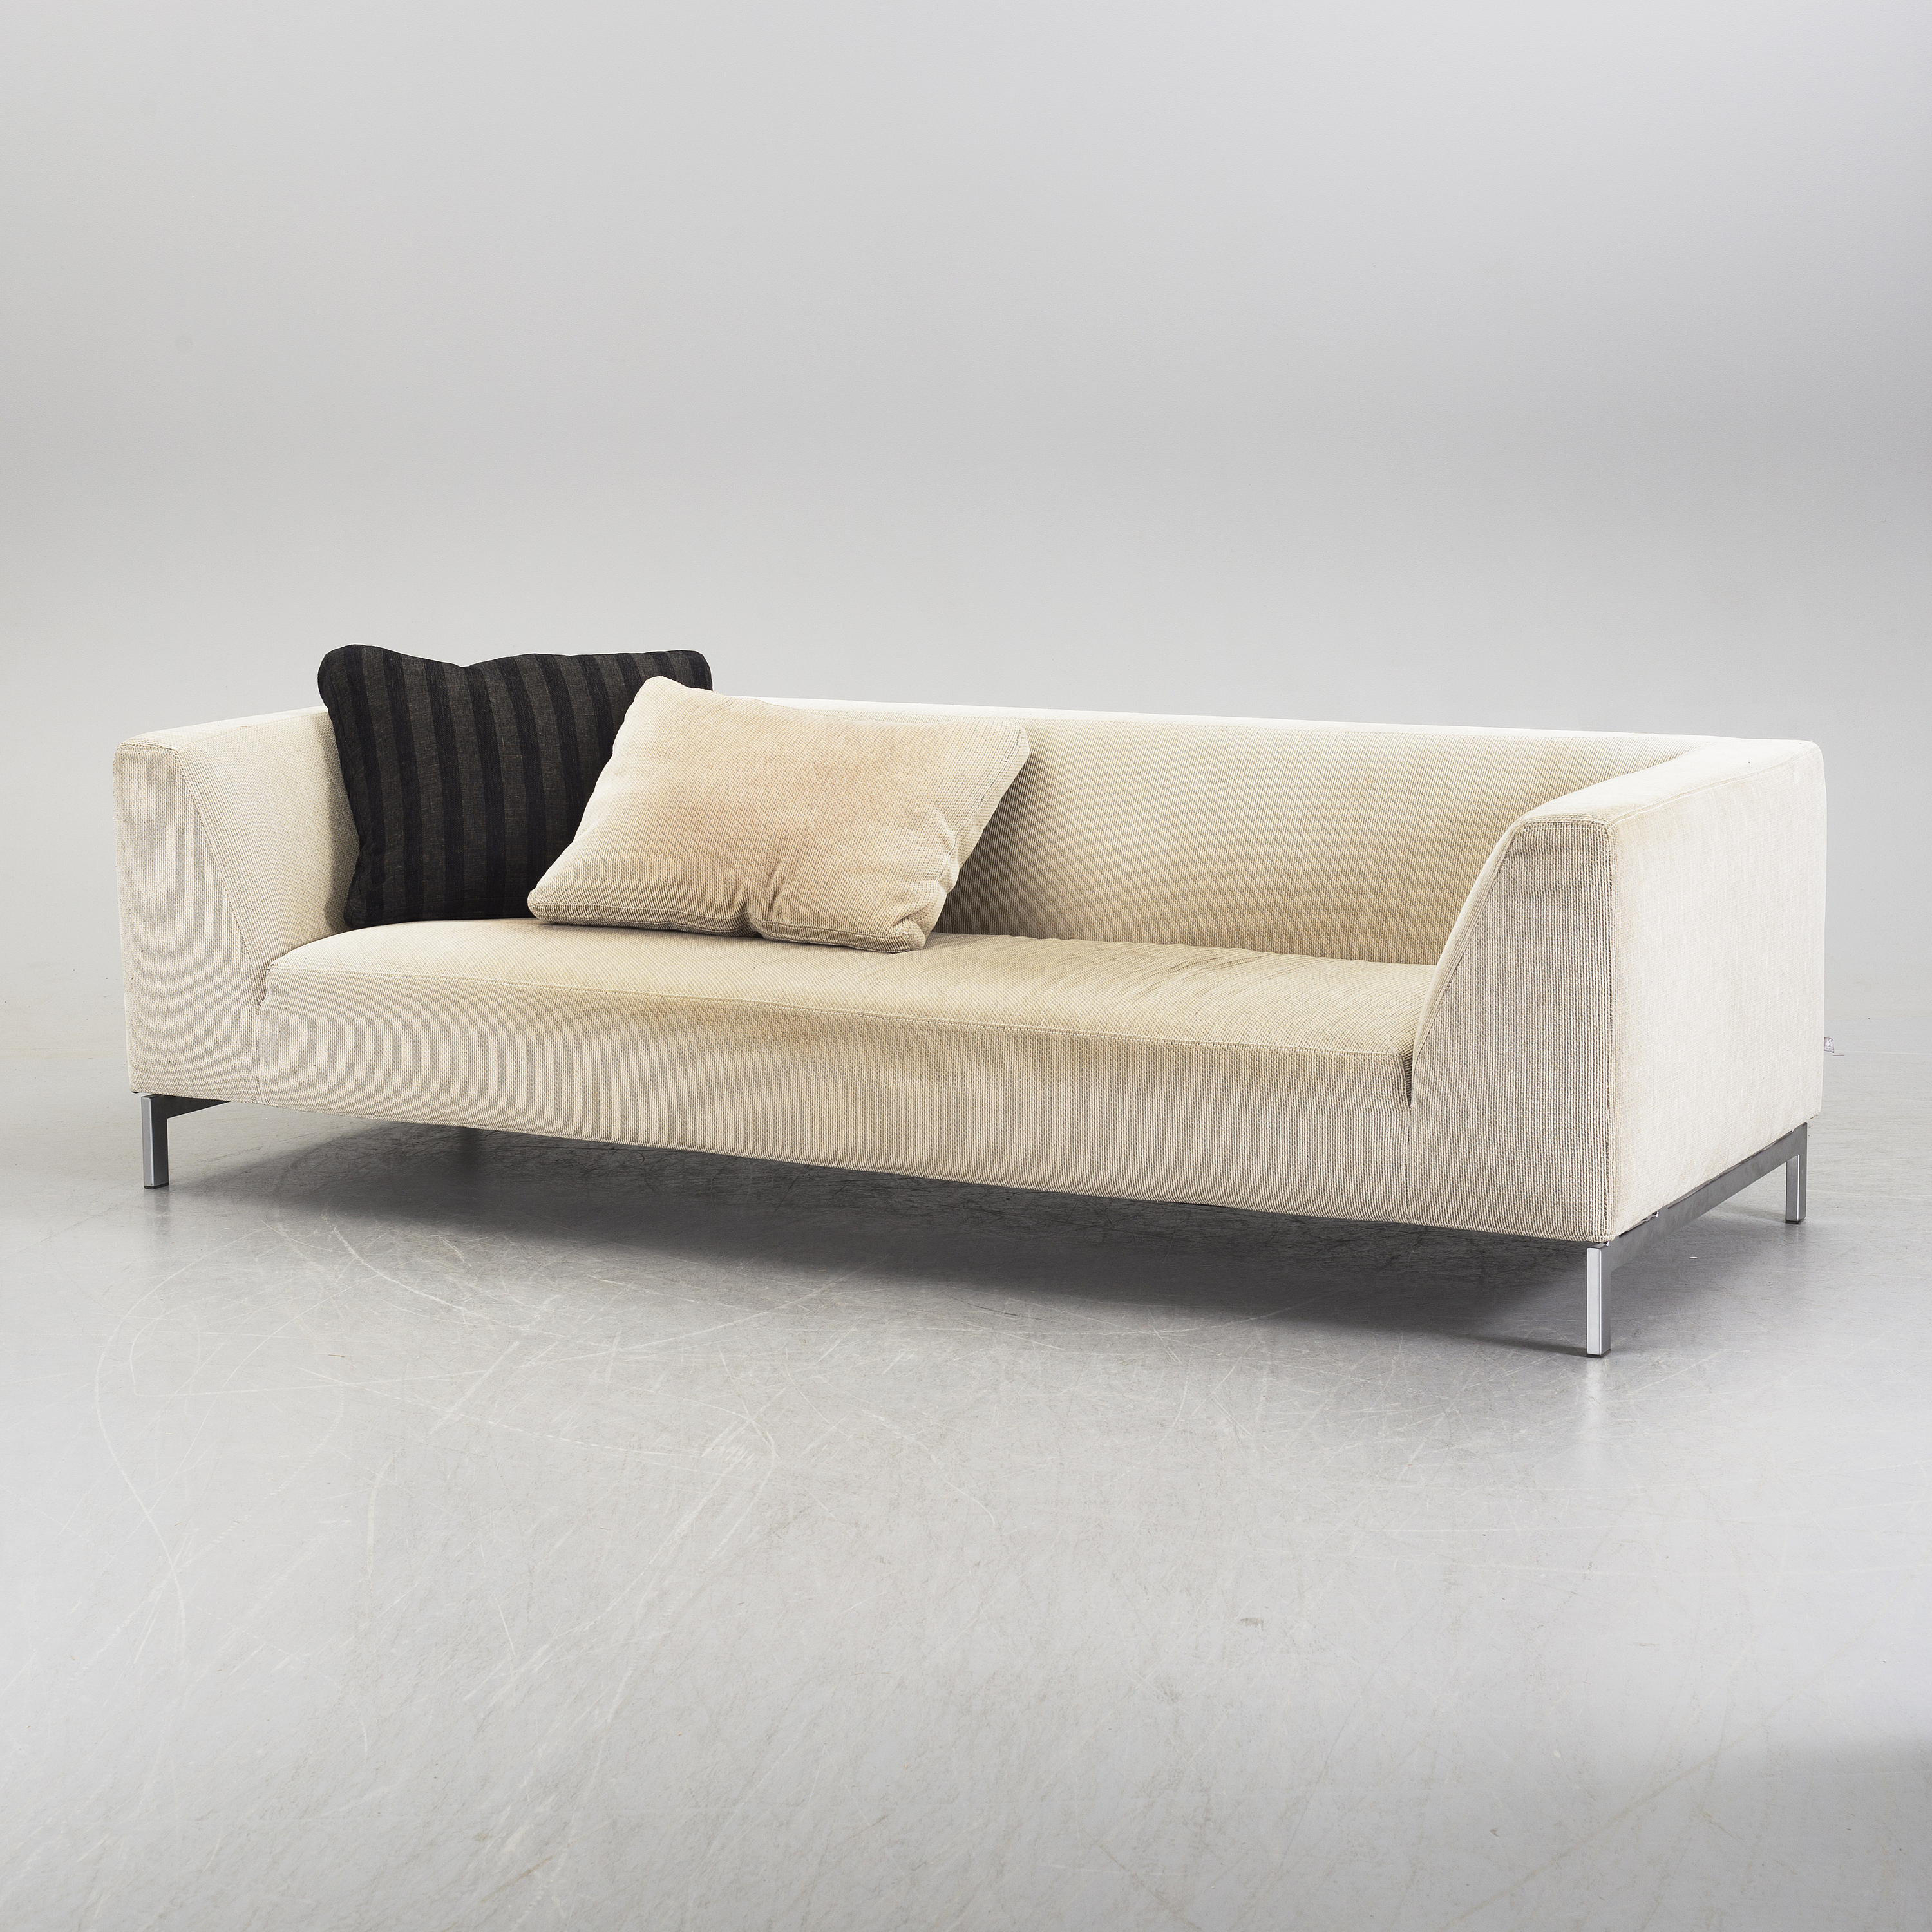 Natuzzi Couchtisch Glas Sofa Domino Best Large Picture Of Bernards Bohemian Domino S Sofa